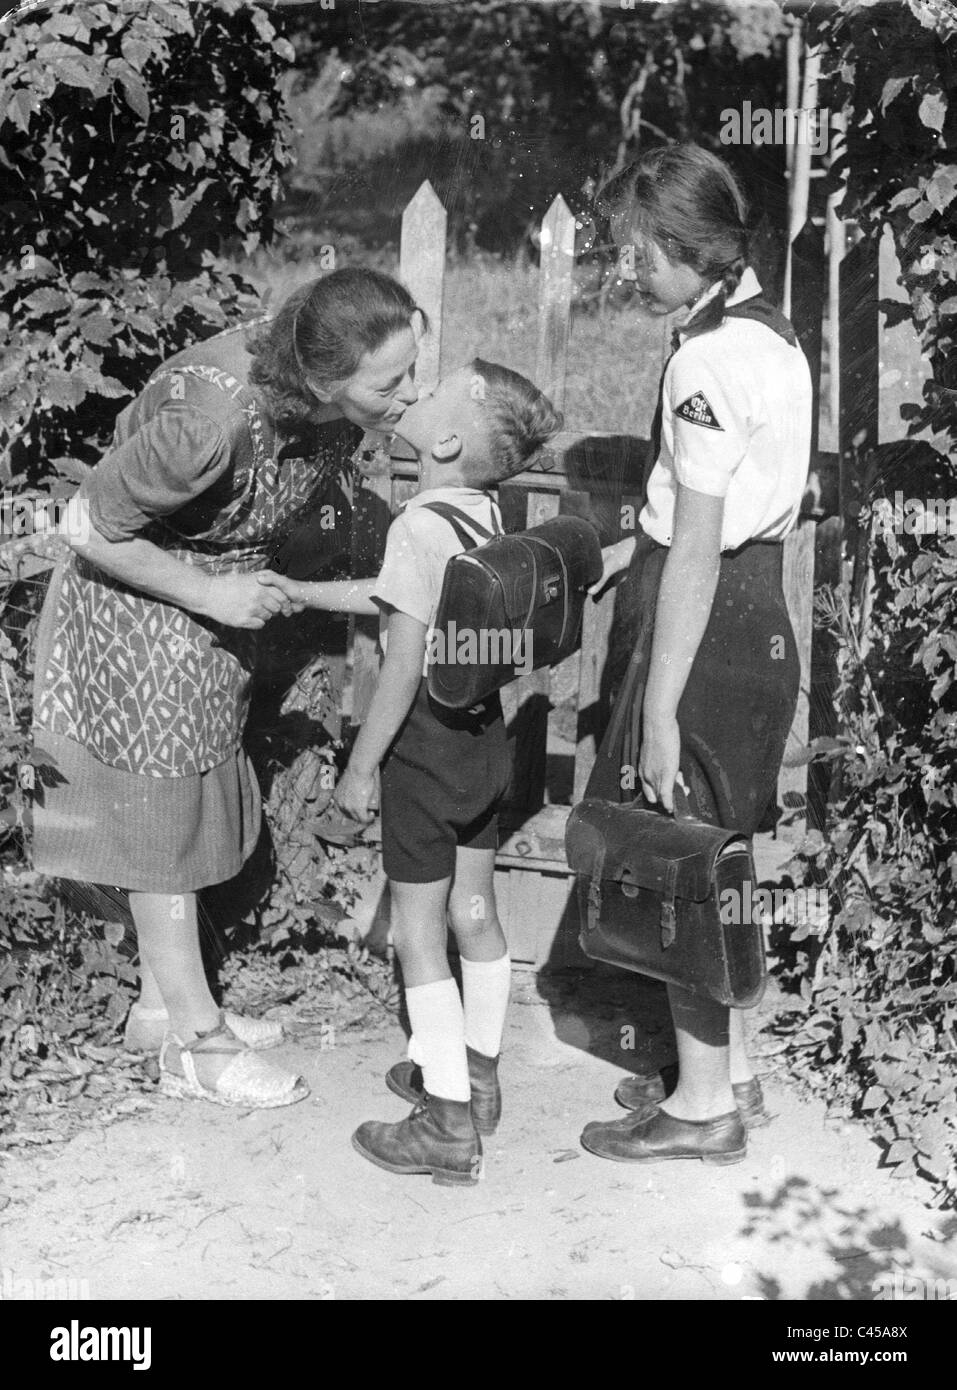 A mother says goodbye to her children as they go to school, 1943 - Stock Image